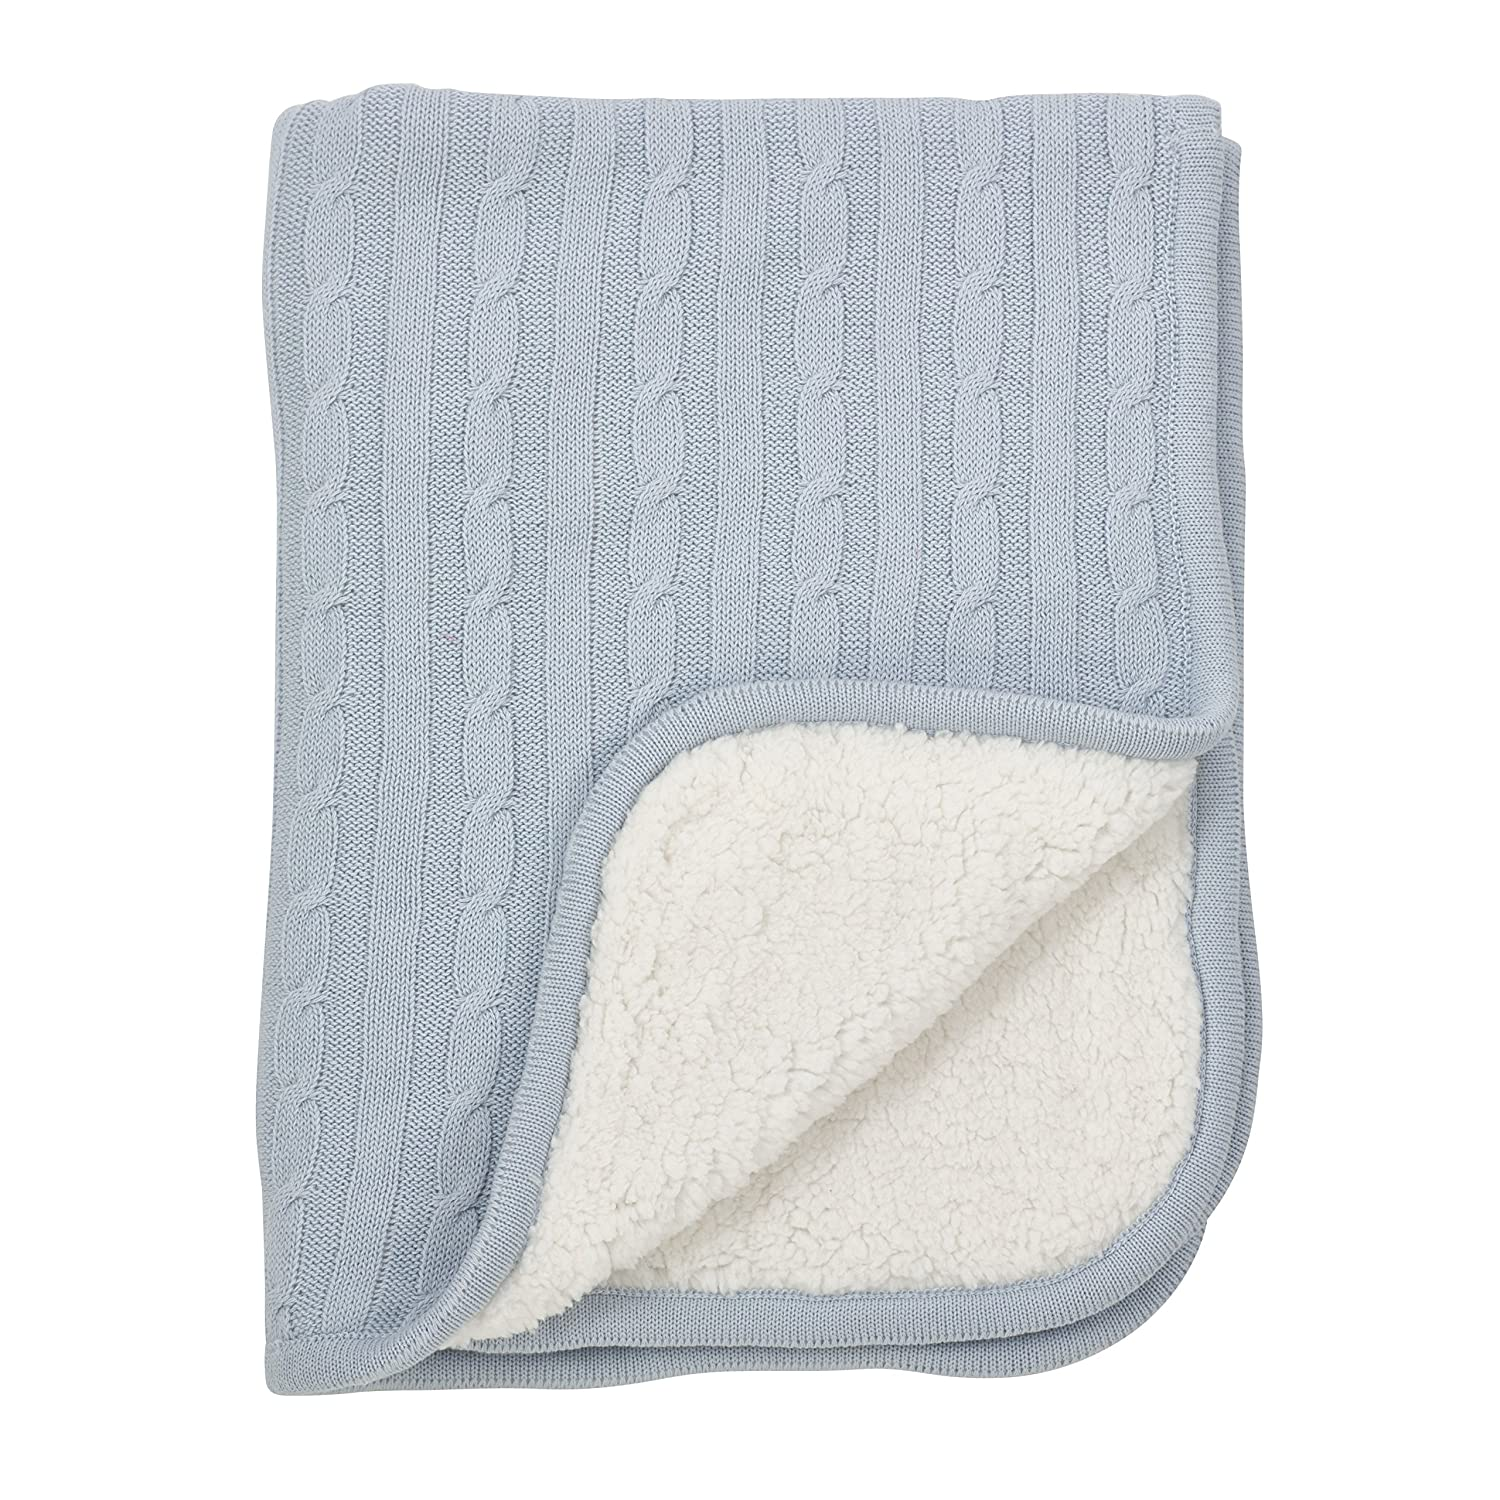 b08c6763b Fennco Styles Classic Cable Knit Sherpa Reversible Baby Blanket 3 Colors  (Blue): Amazon.co.uk: Kitchen & Home